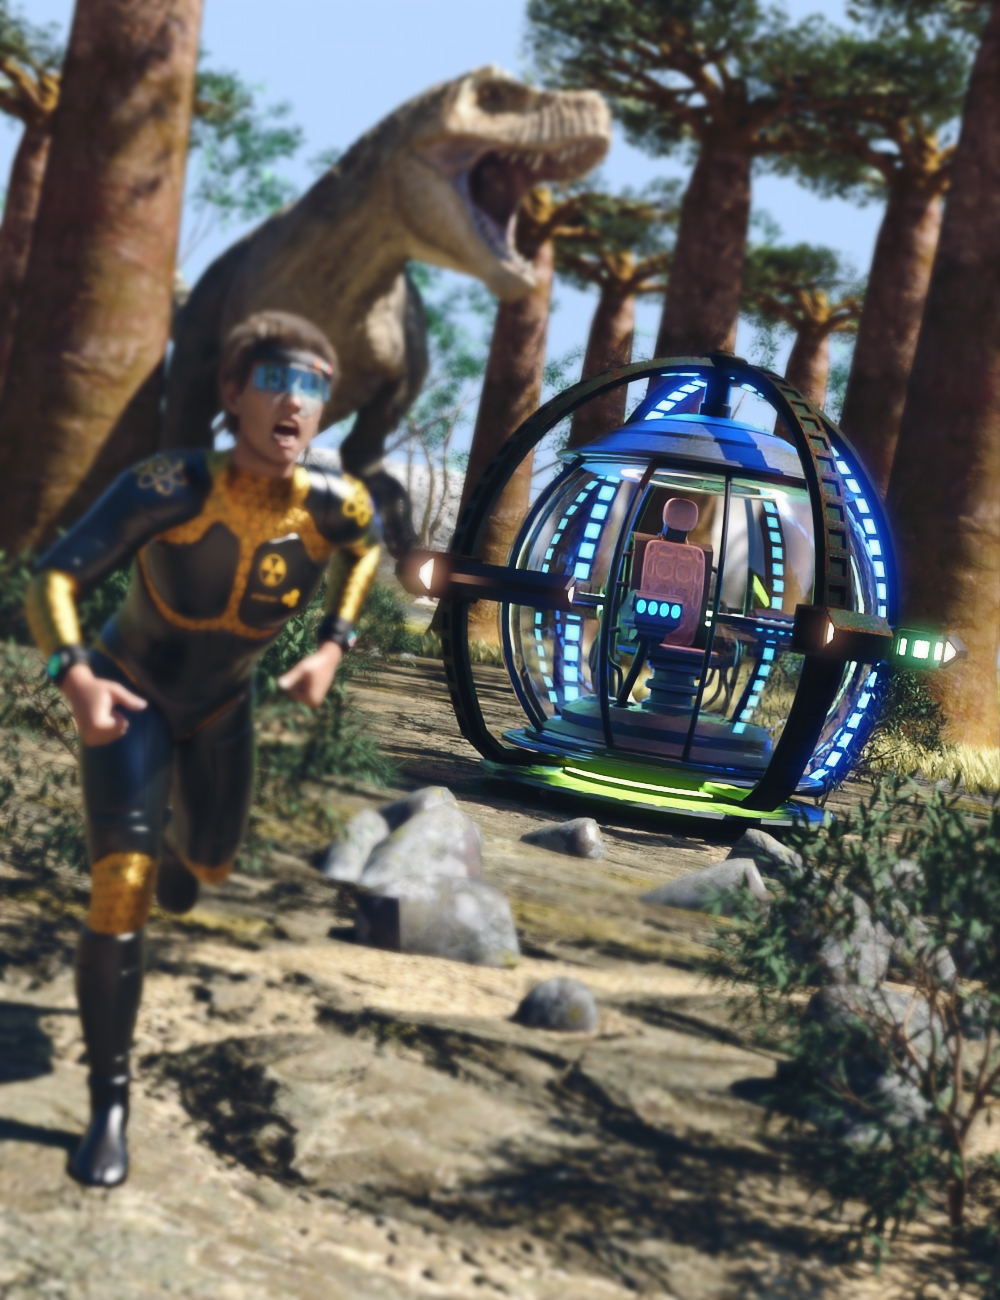 Time Travel Machine by: AcharyaPolina, 3D Models by Daz 3D